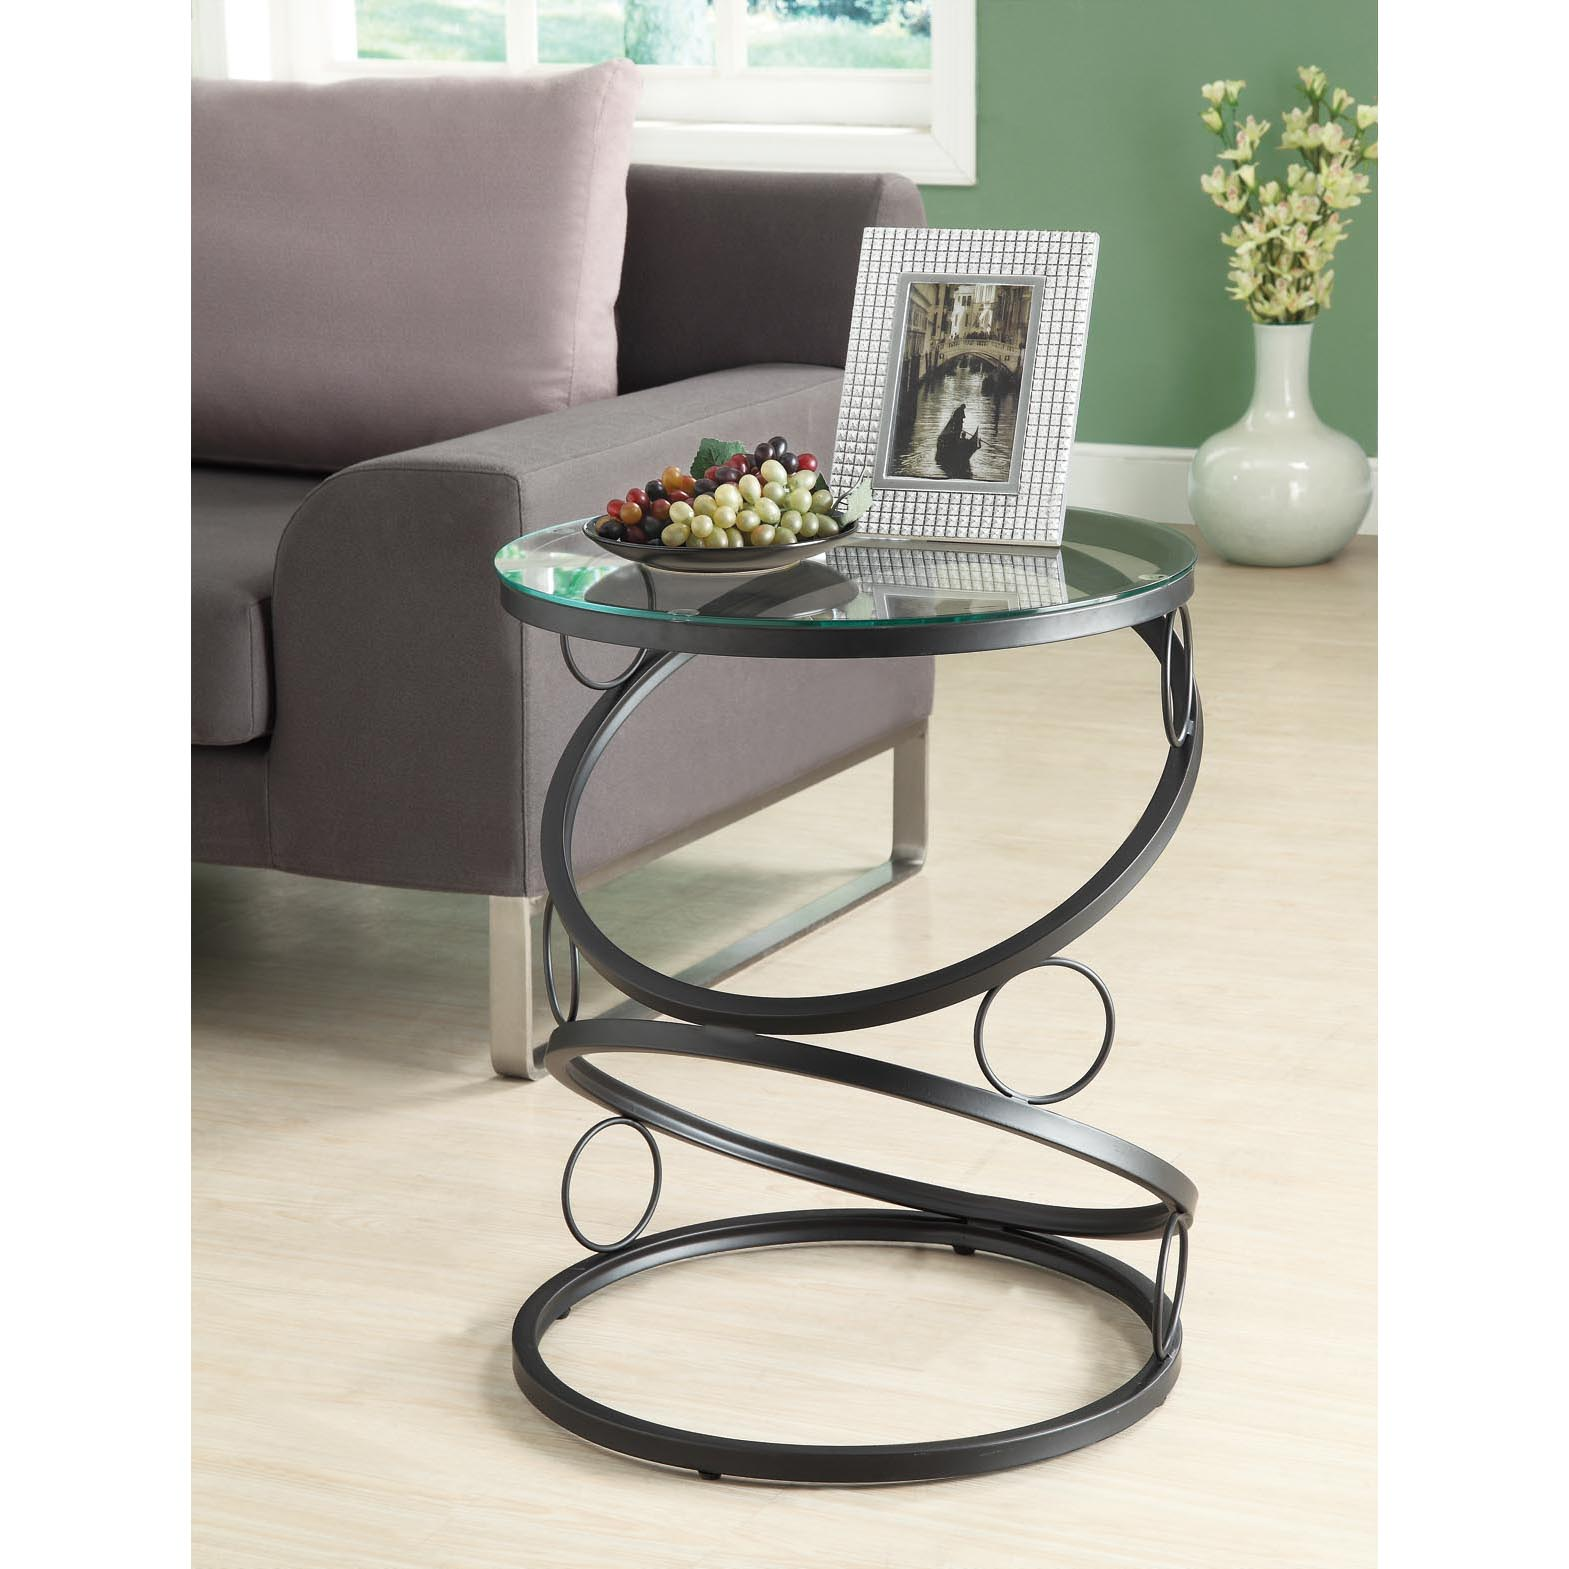 Matte black metal accent table with tempered glass 14344293